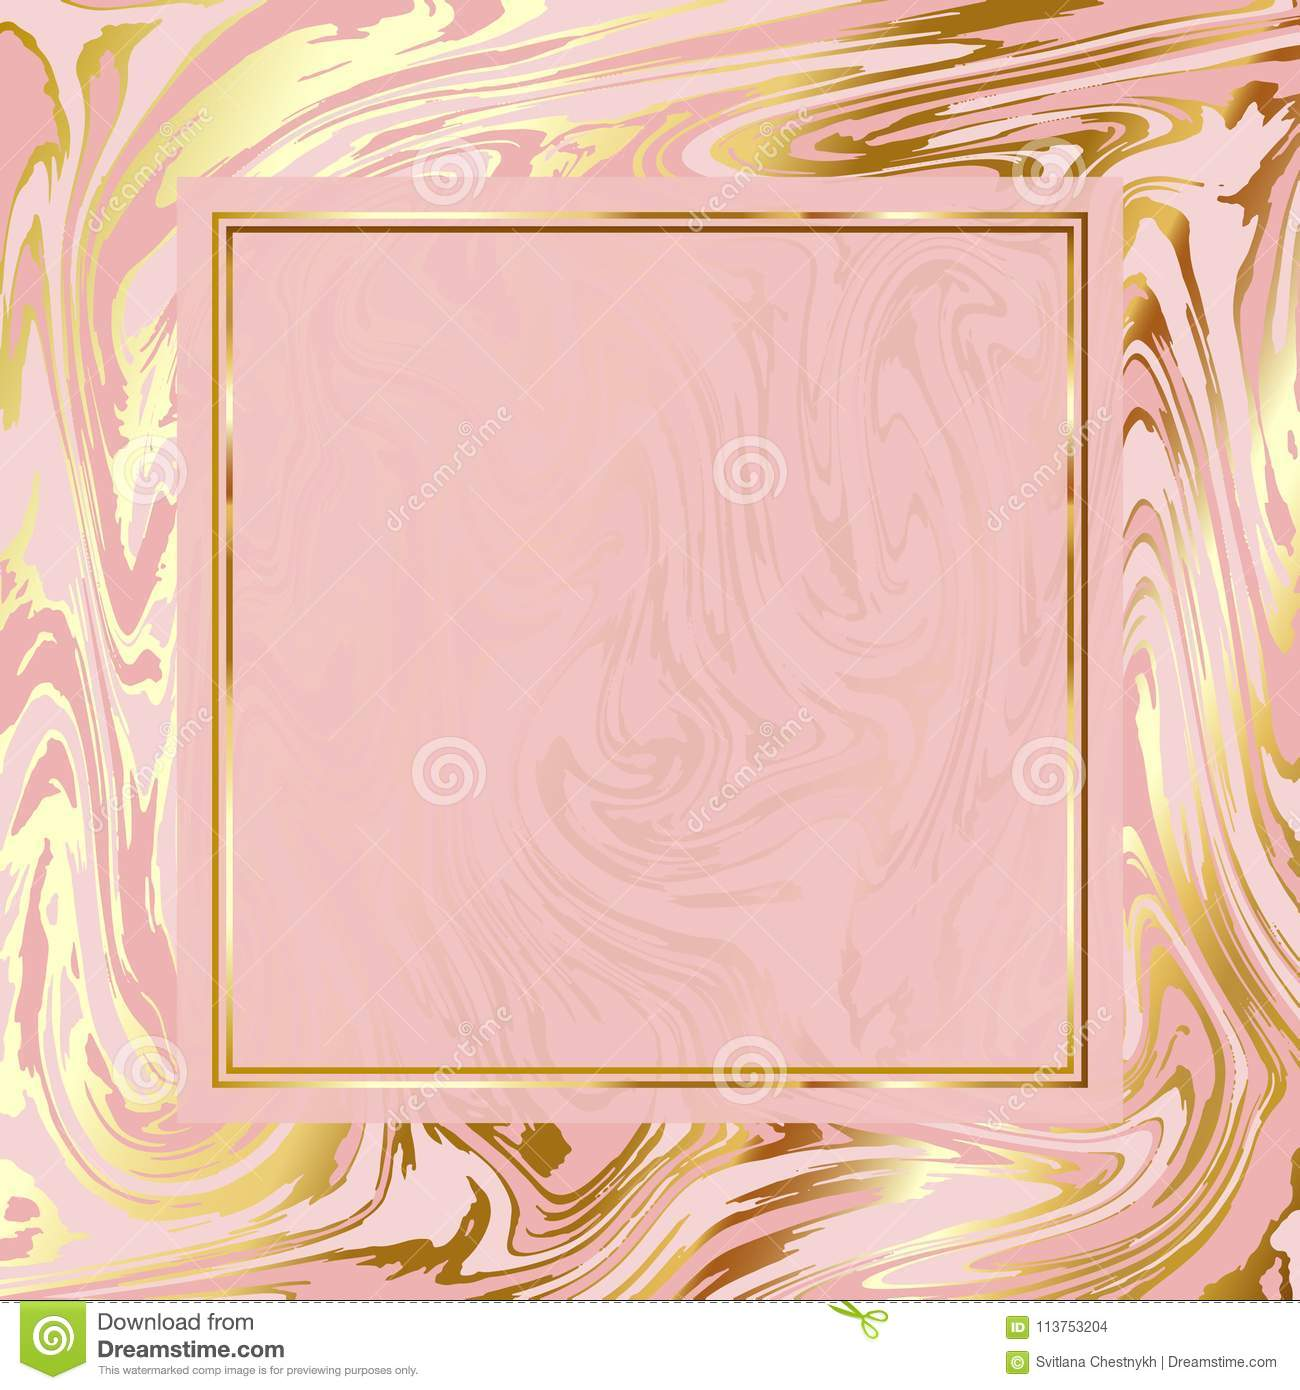 Bright Marble Paper Vector Texture Imitation Pale Rose Pink And